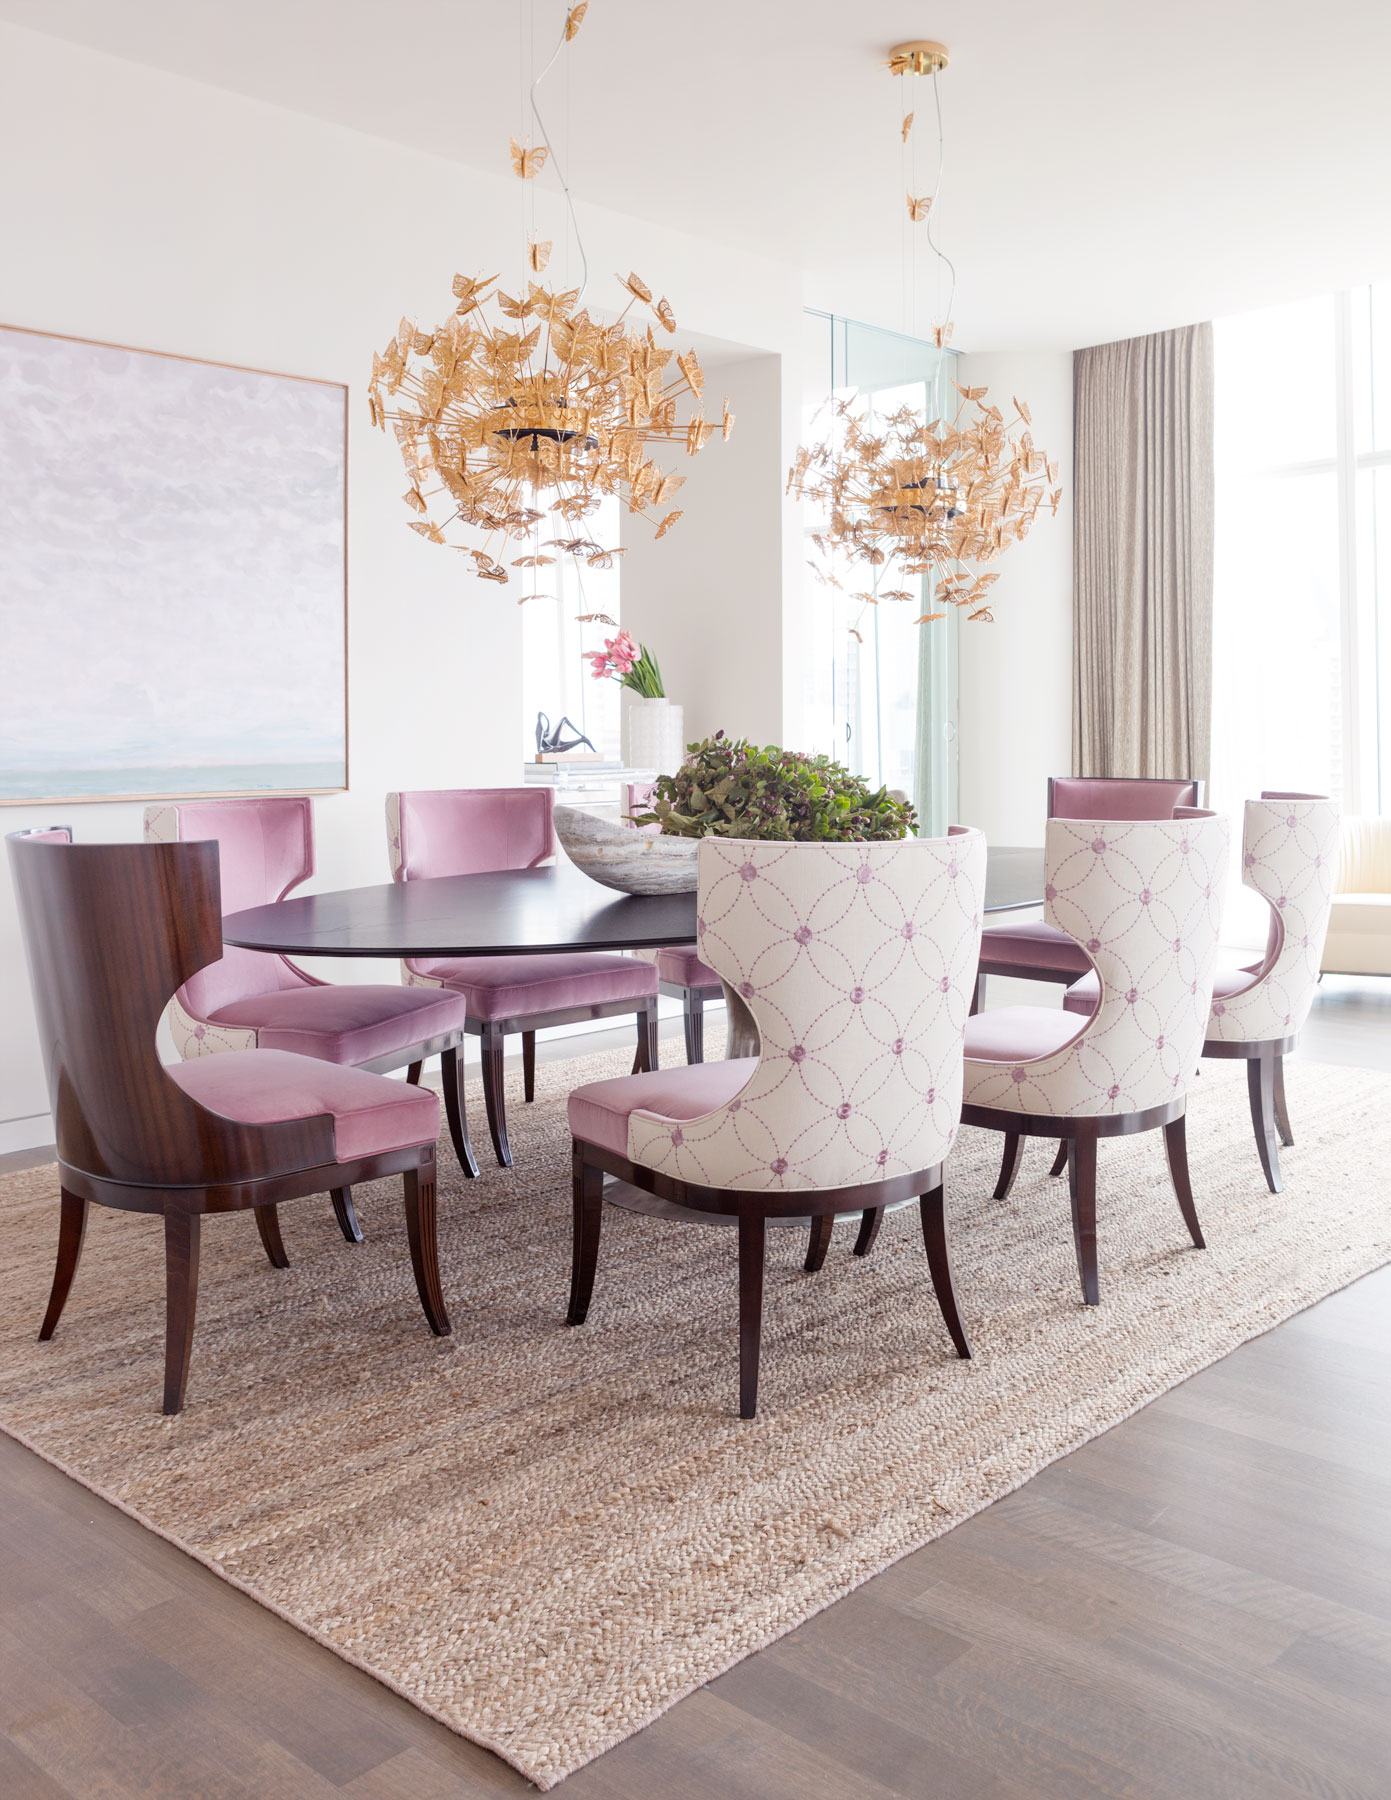 Dining Room Trends for 2017 That You Will Love  Dining Room Trends Dining Room Trends for 2017 That You Will Love Dining Room Trends for 2017 That You Will Love11